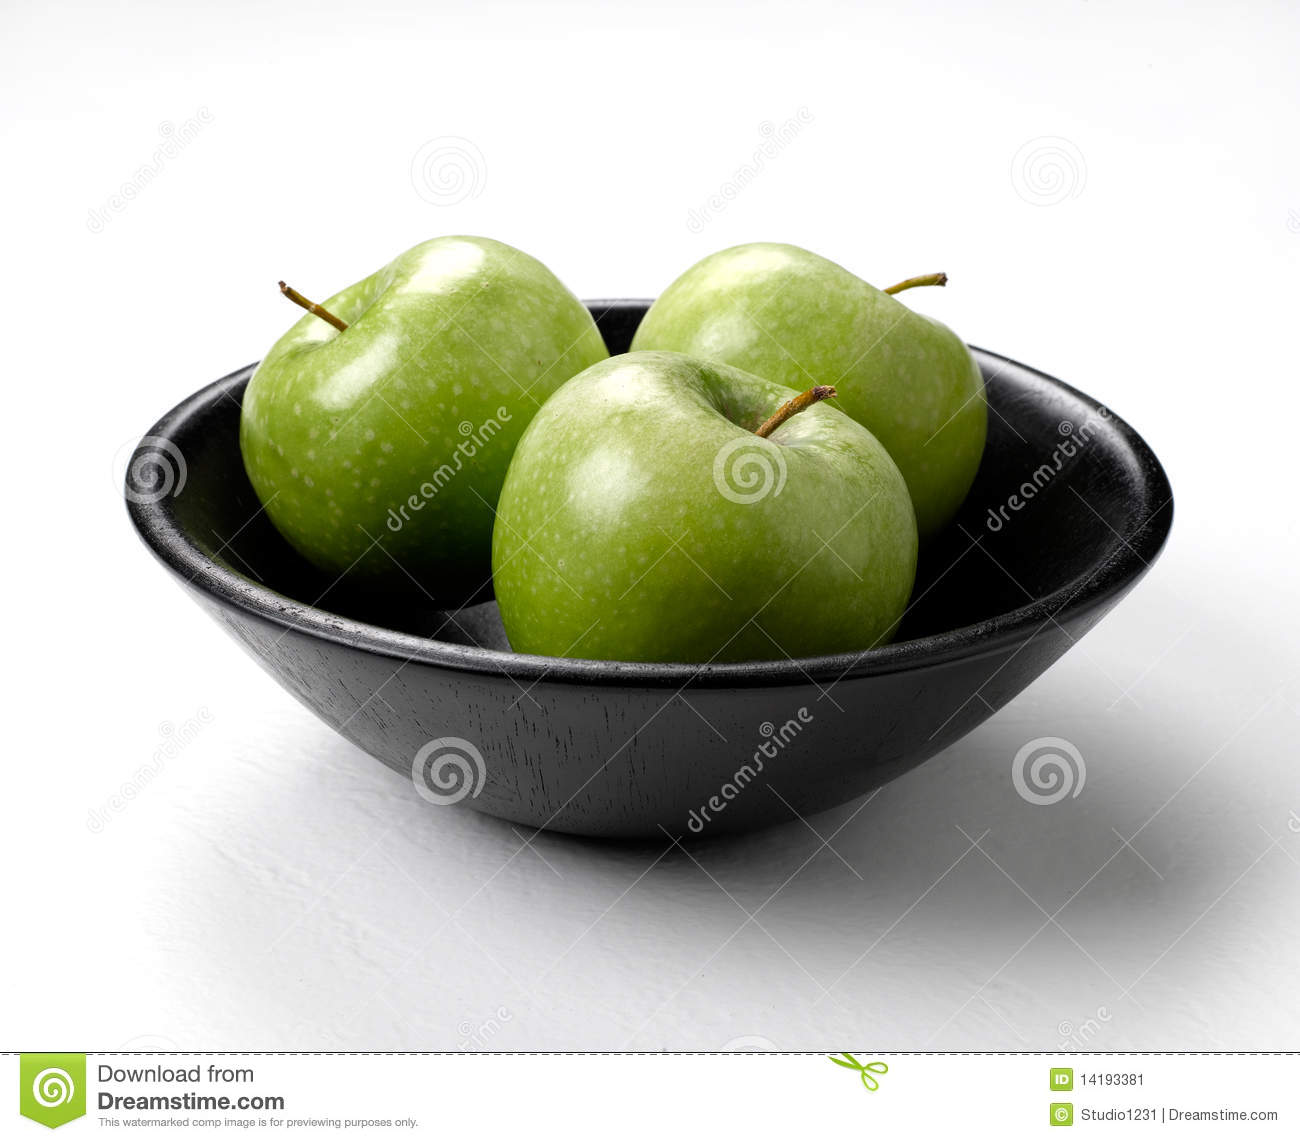 Bowl Of Green Apples Stock Image - Image: 14193381